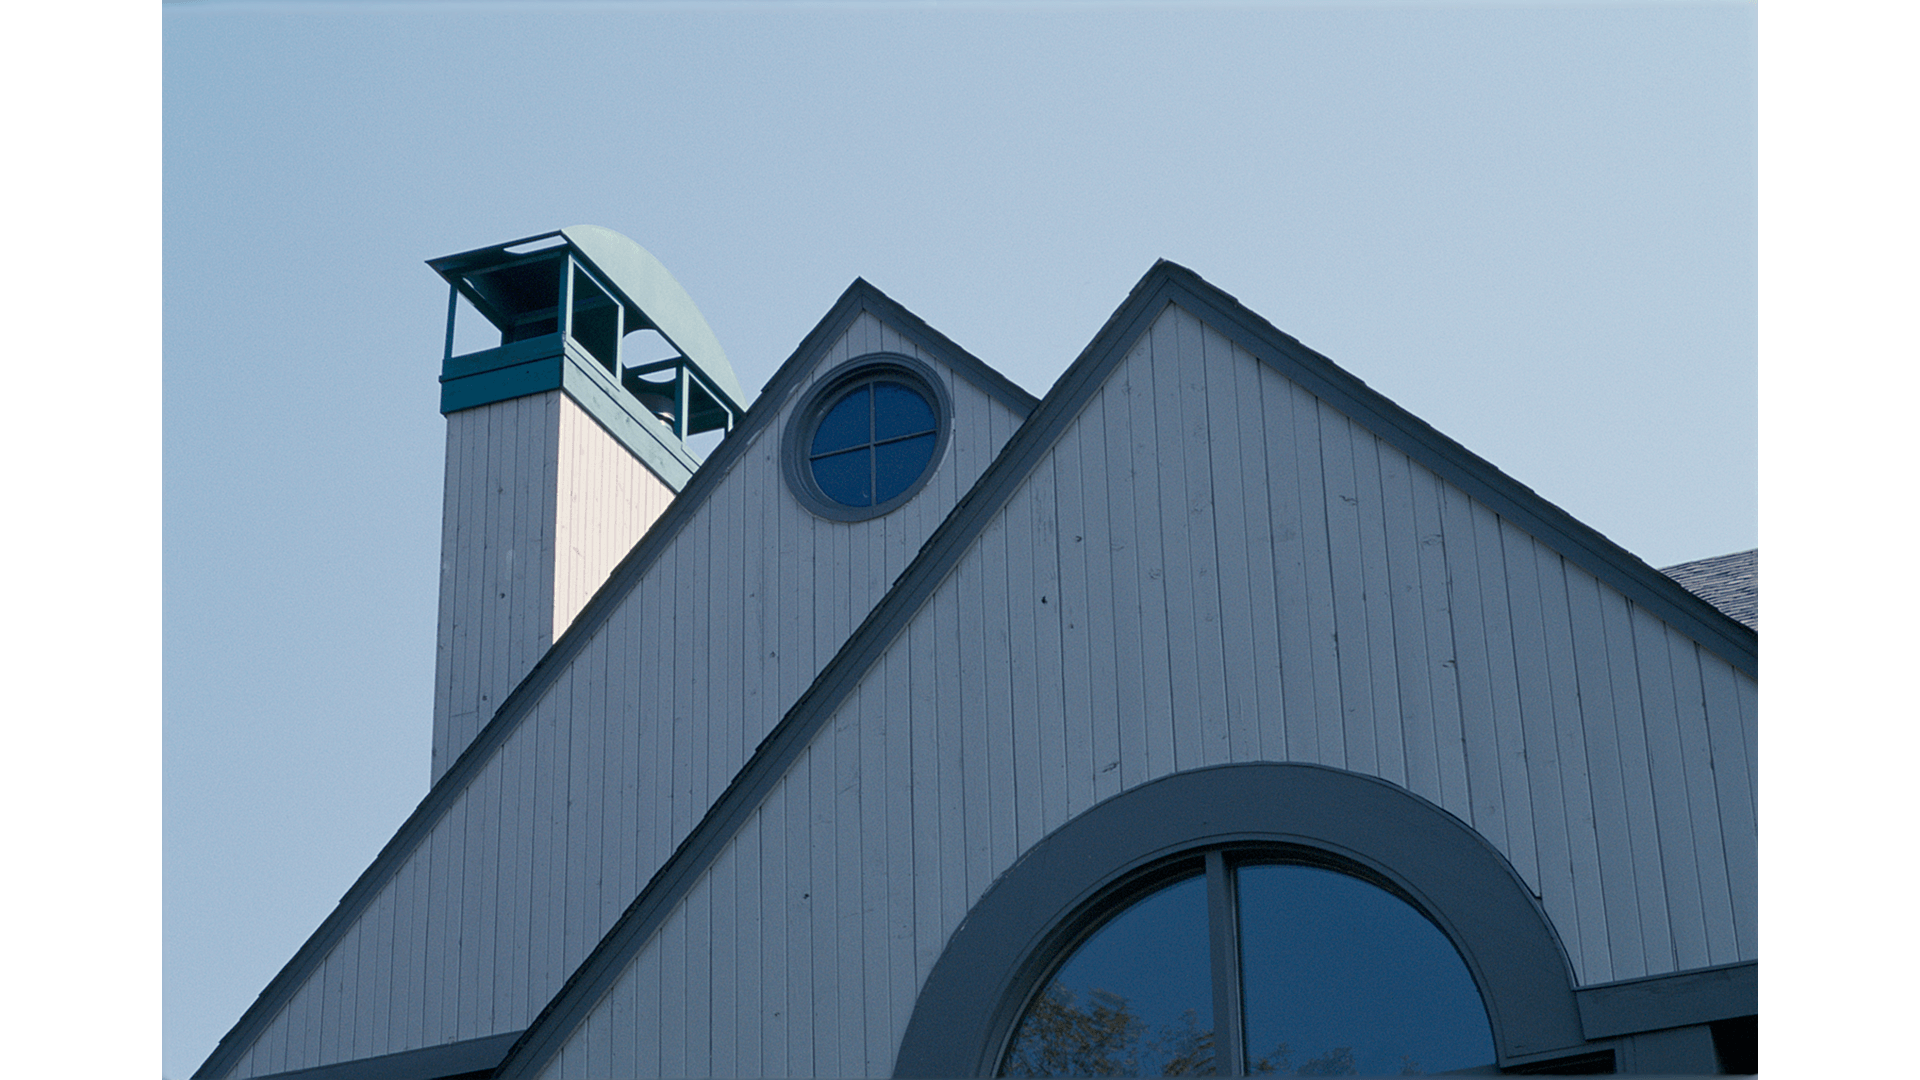 Roof Detail from Newport Shores